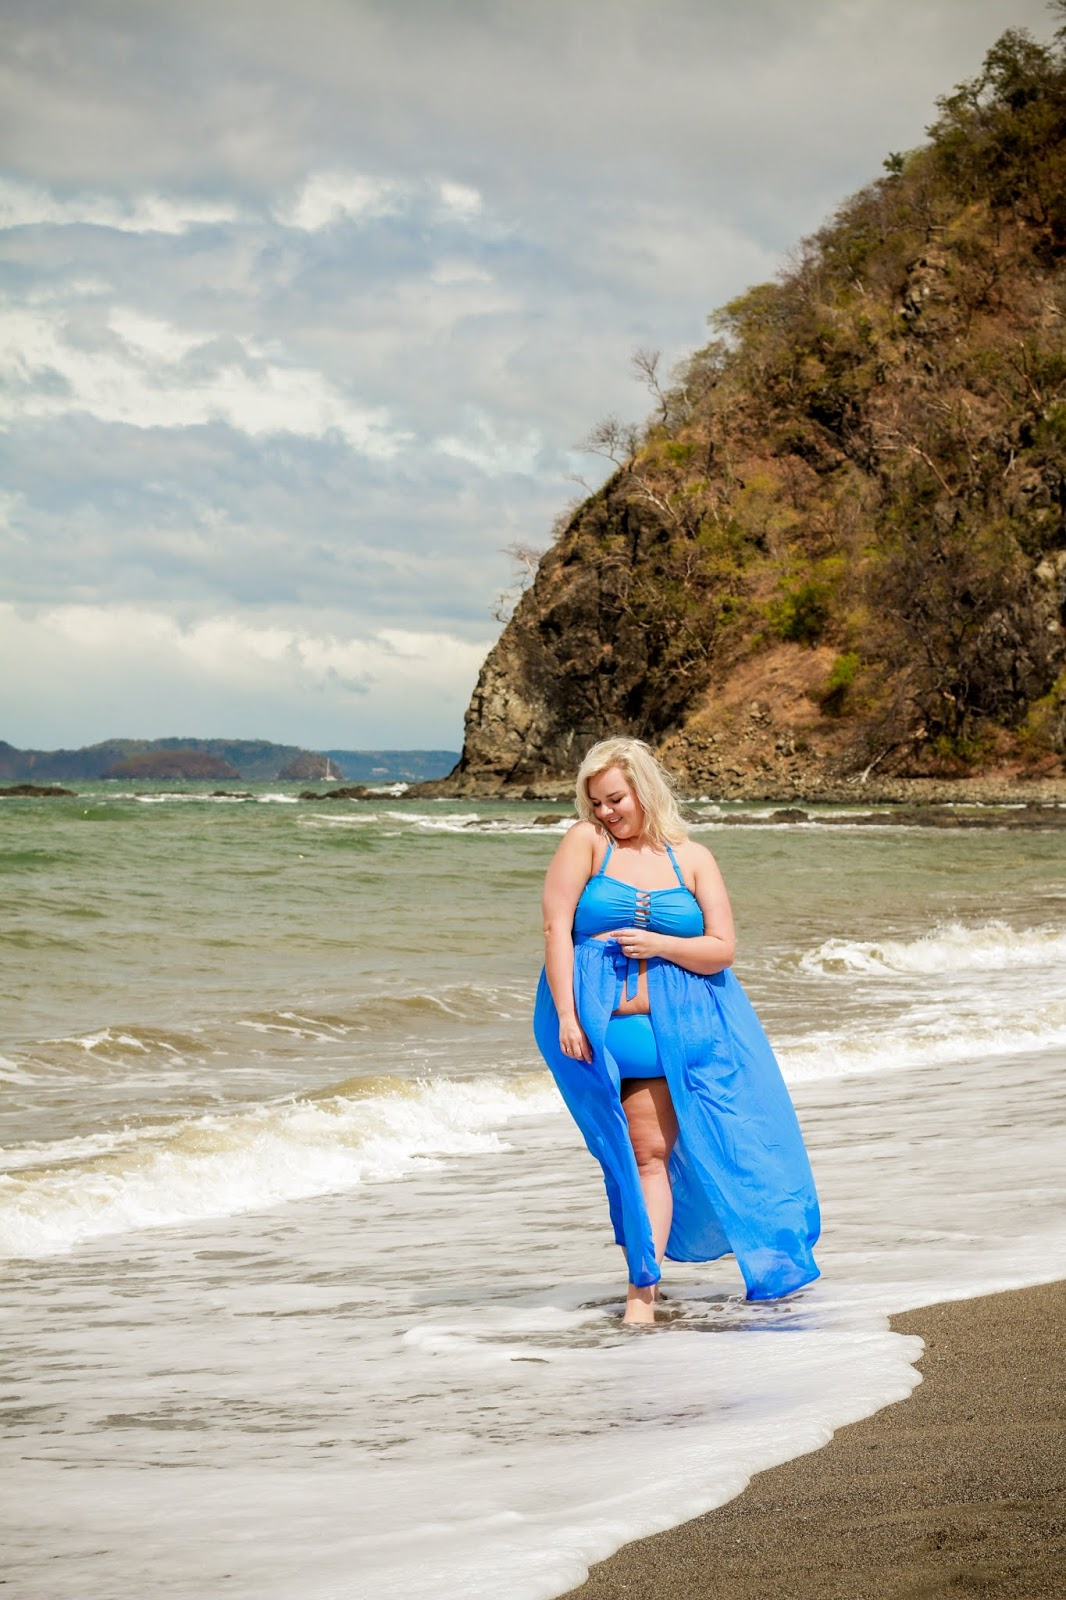 Simply Be Simply Yours Swimwear on UK Plus Size Fashion Blogger WhatLauraLoves